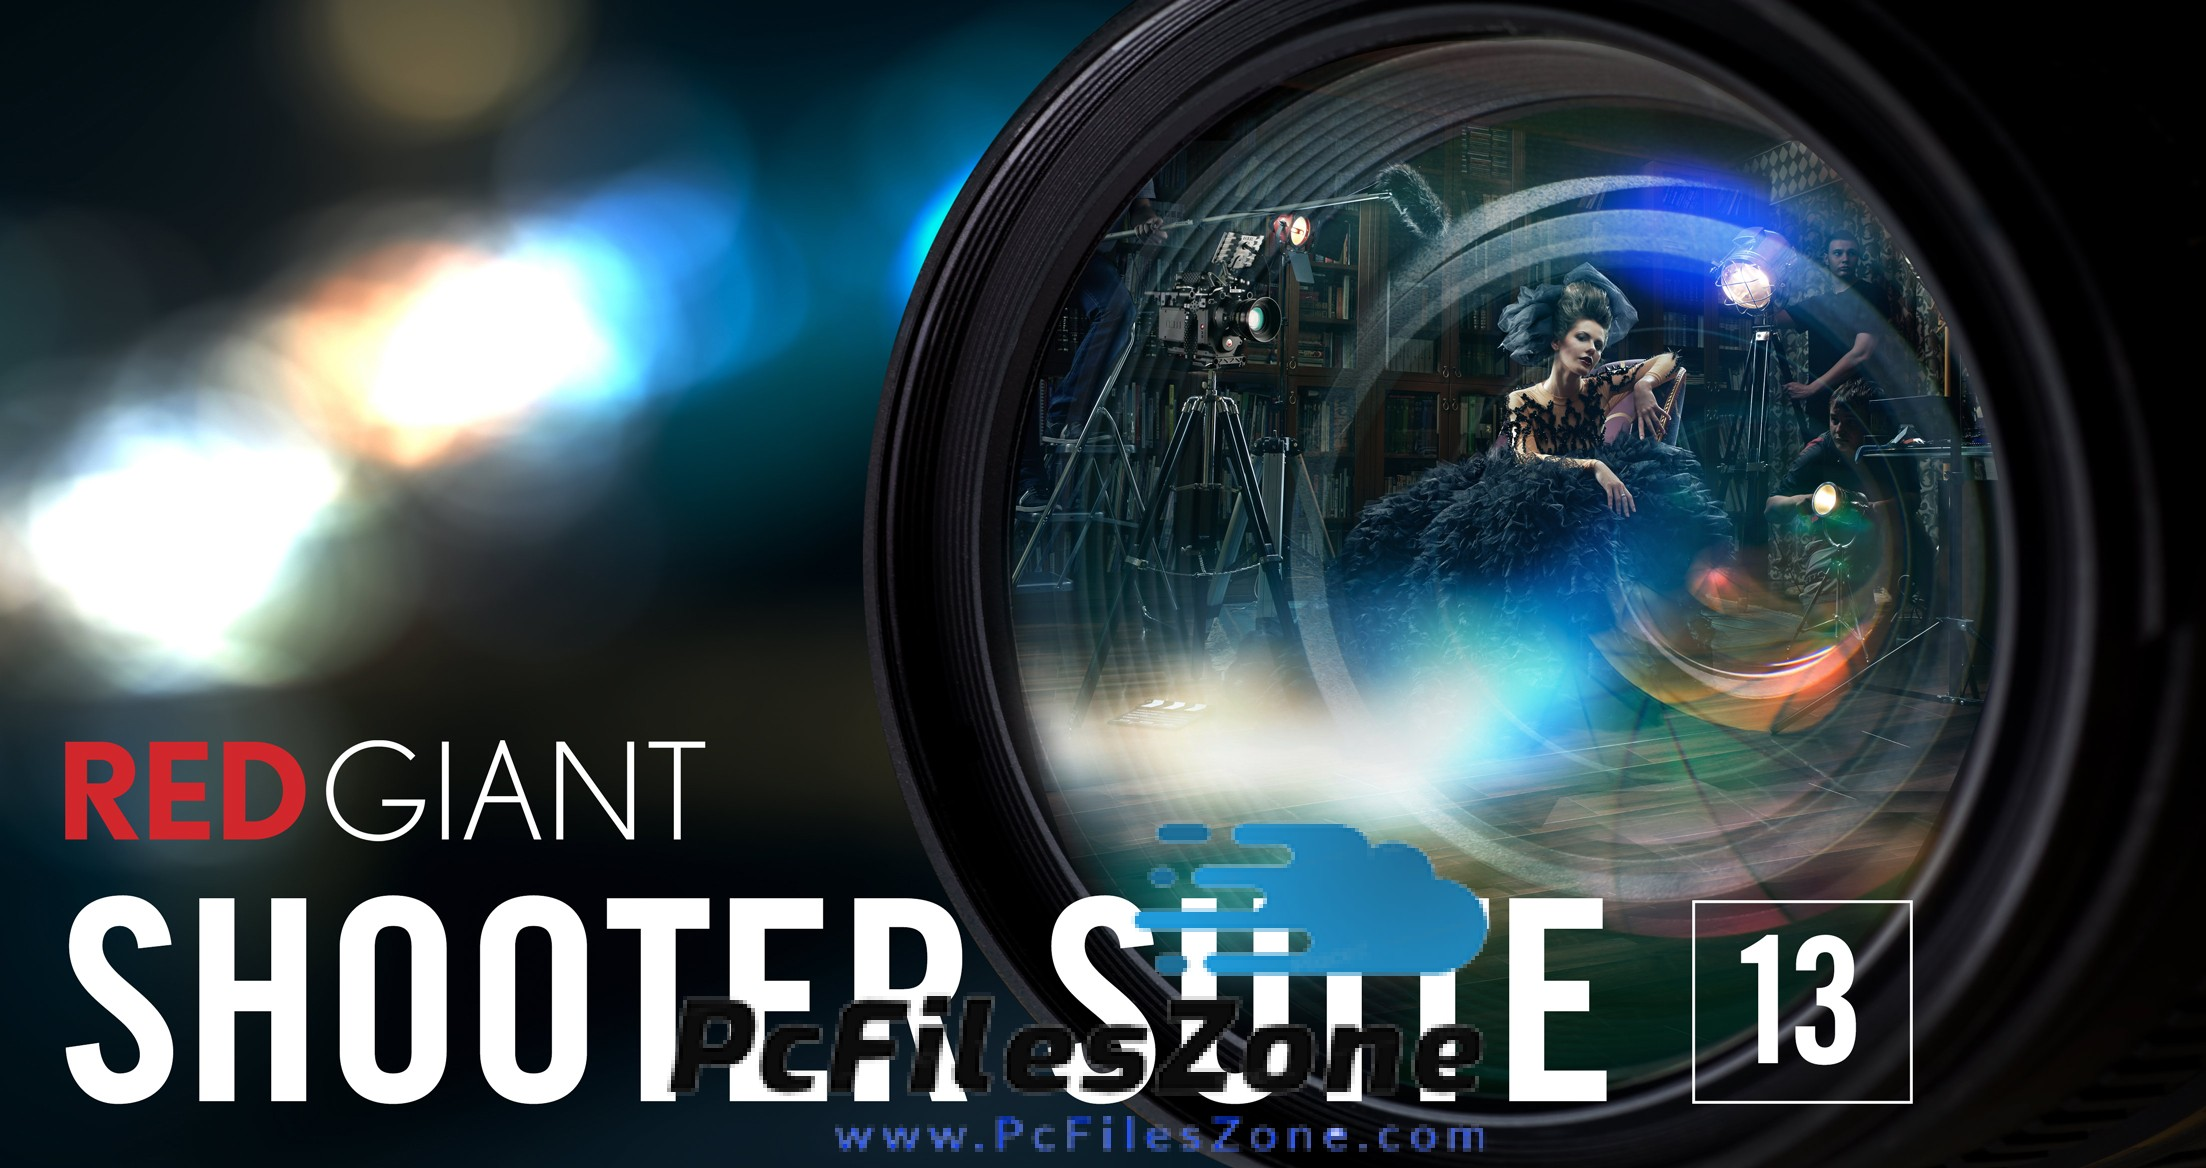 Red Giant Shooter Suite 13.1 For Pc Free Download